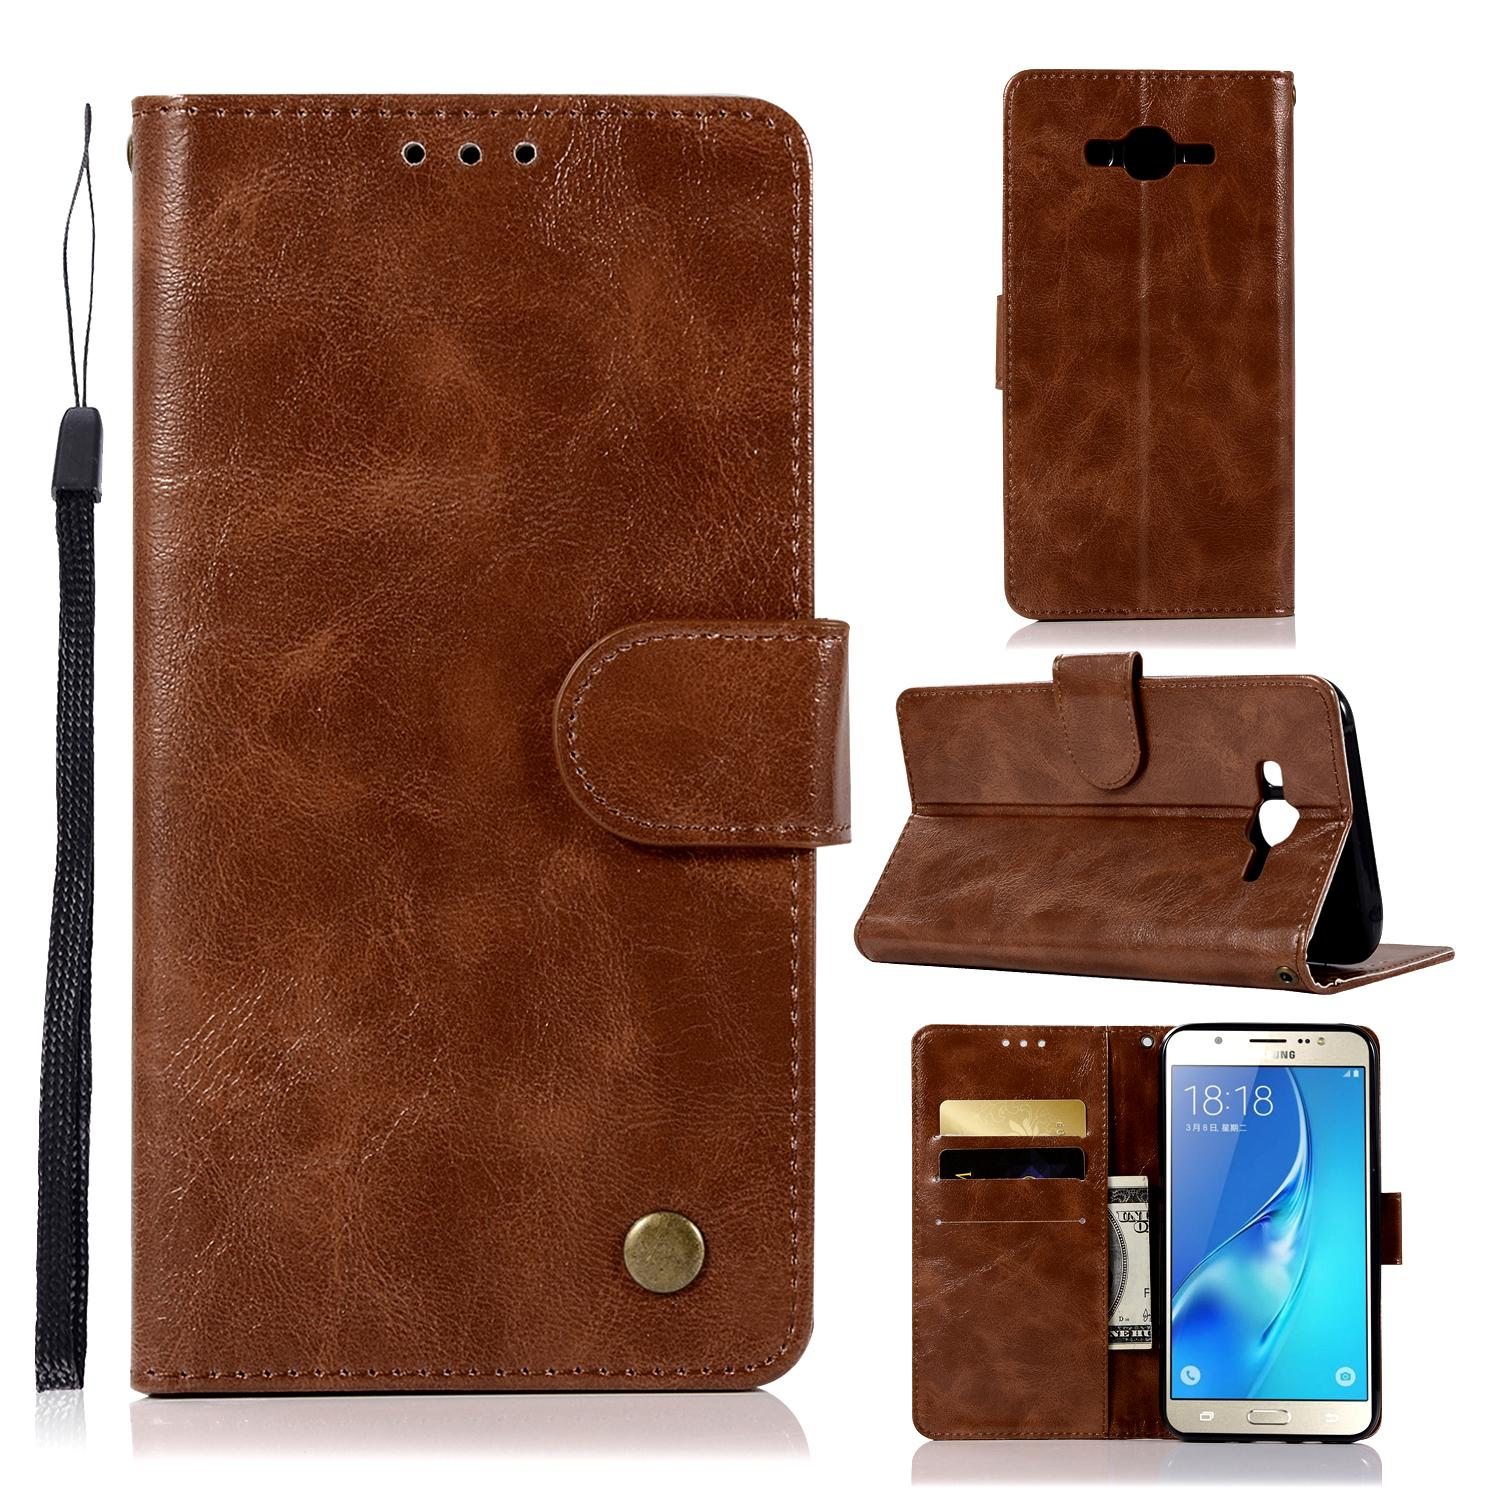 Casing For Samsung Galaxy J5 / J500,reto Leather Wallet Case Magnetic Double Card Holder Flip Cover By Life Goes On.